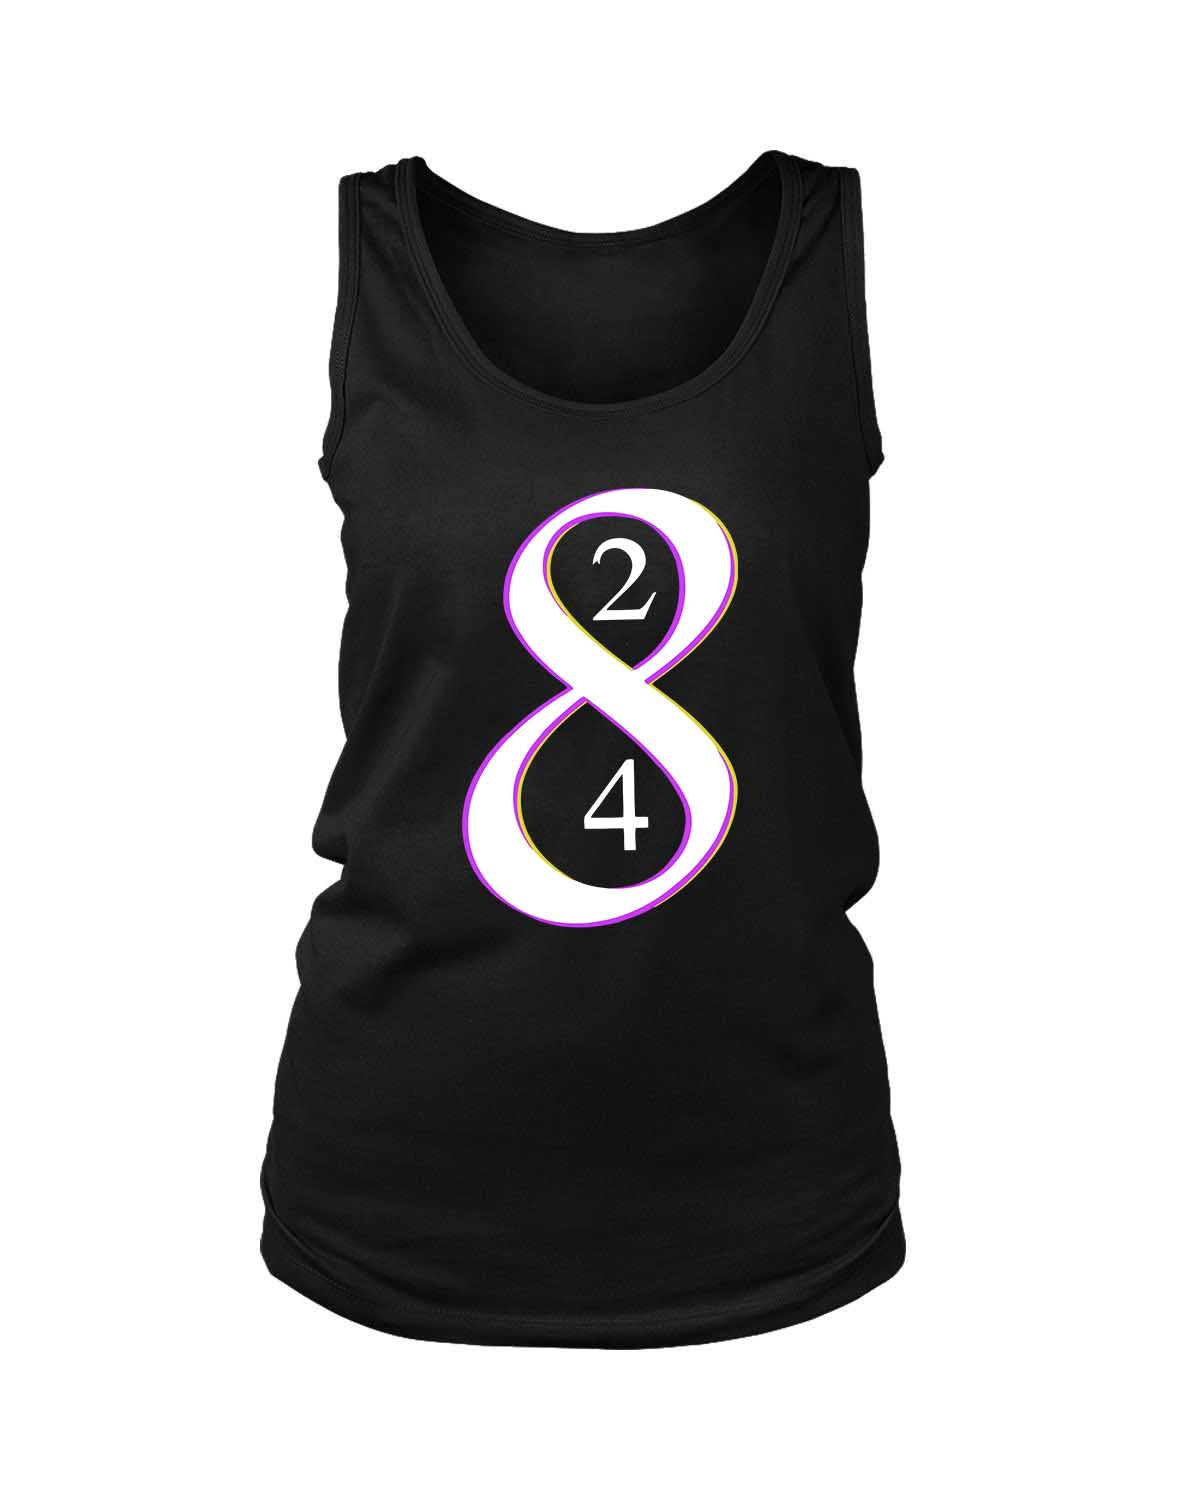 Los Angeles La Laker Legend Kobe Bryant Retiring 8 And 24 Jersey Numbers Women's Tank Top